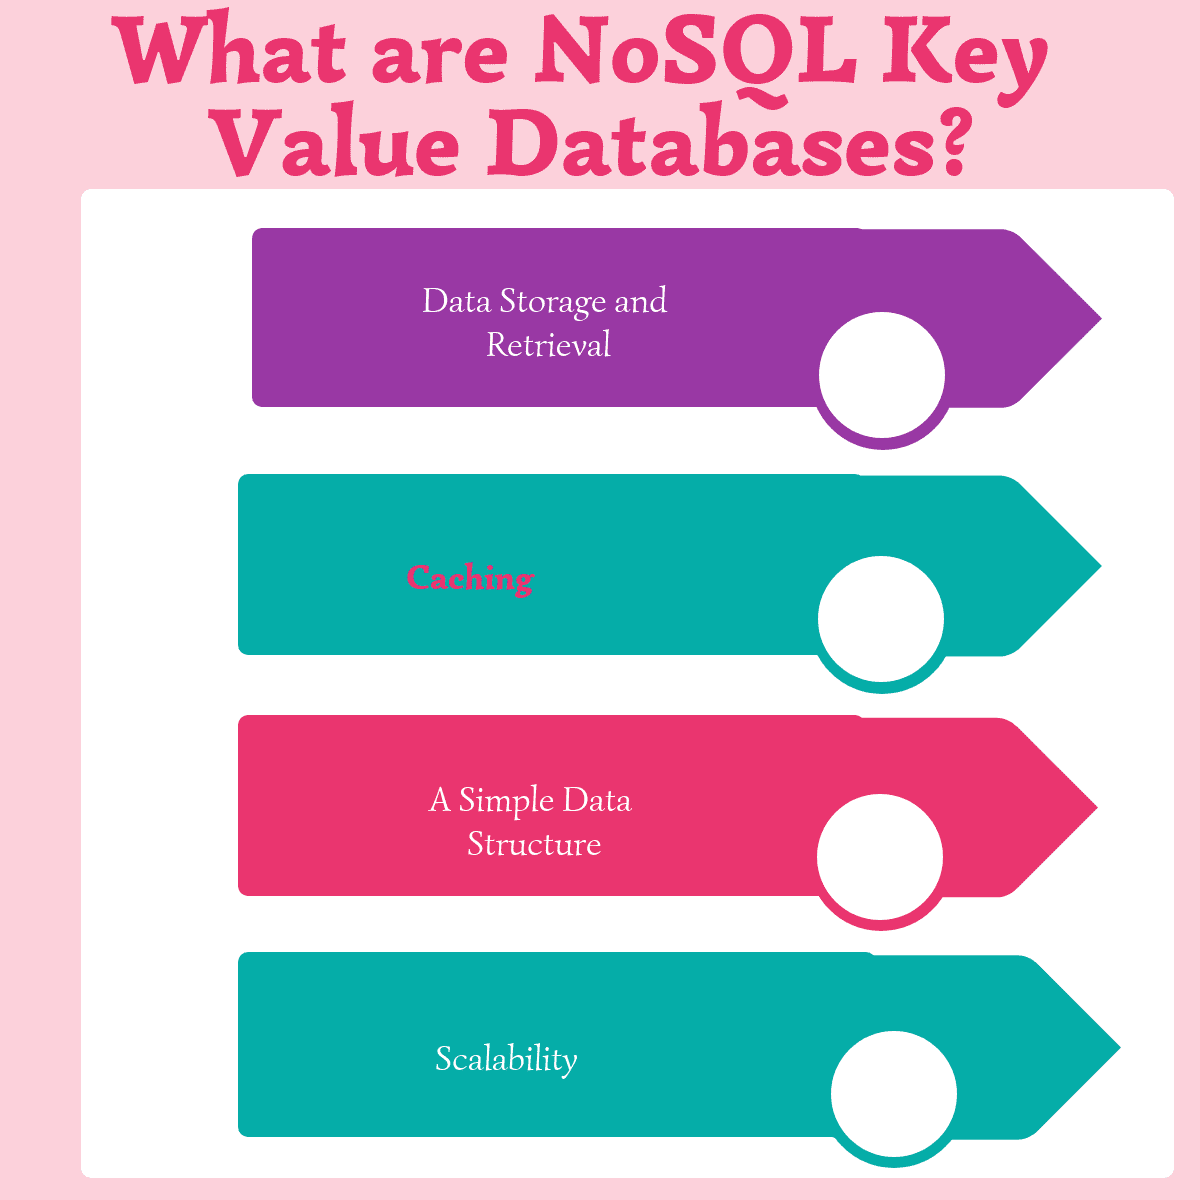 Top 8 NoSQL Key Value Databases - Compare Reviews, Features, Pricing